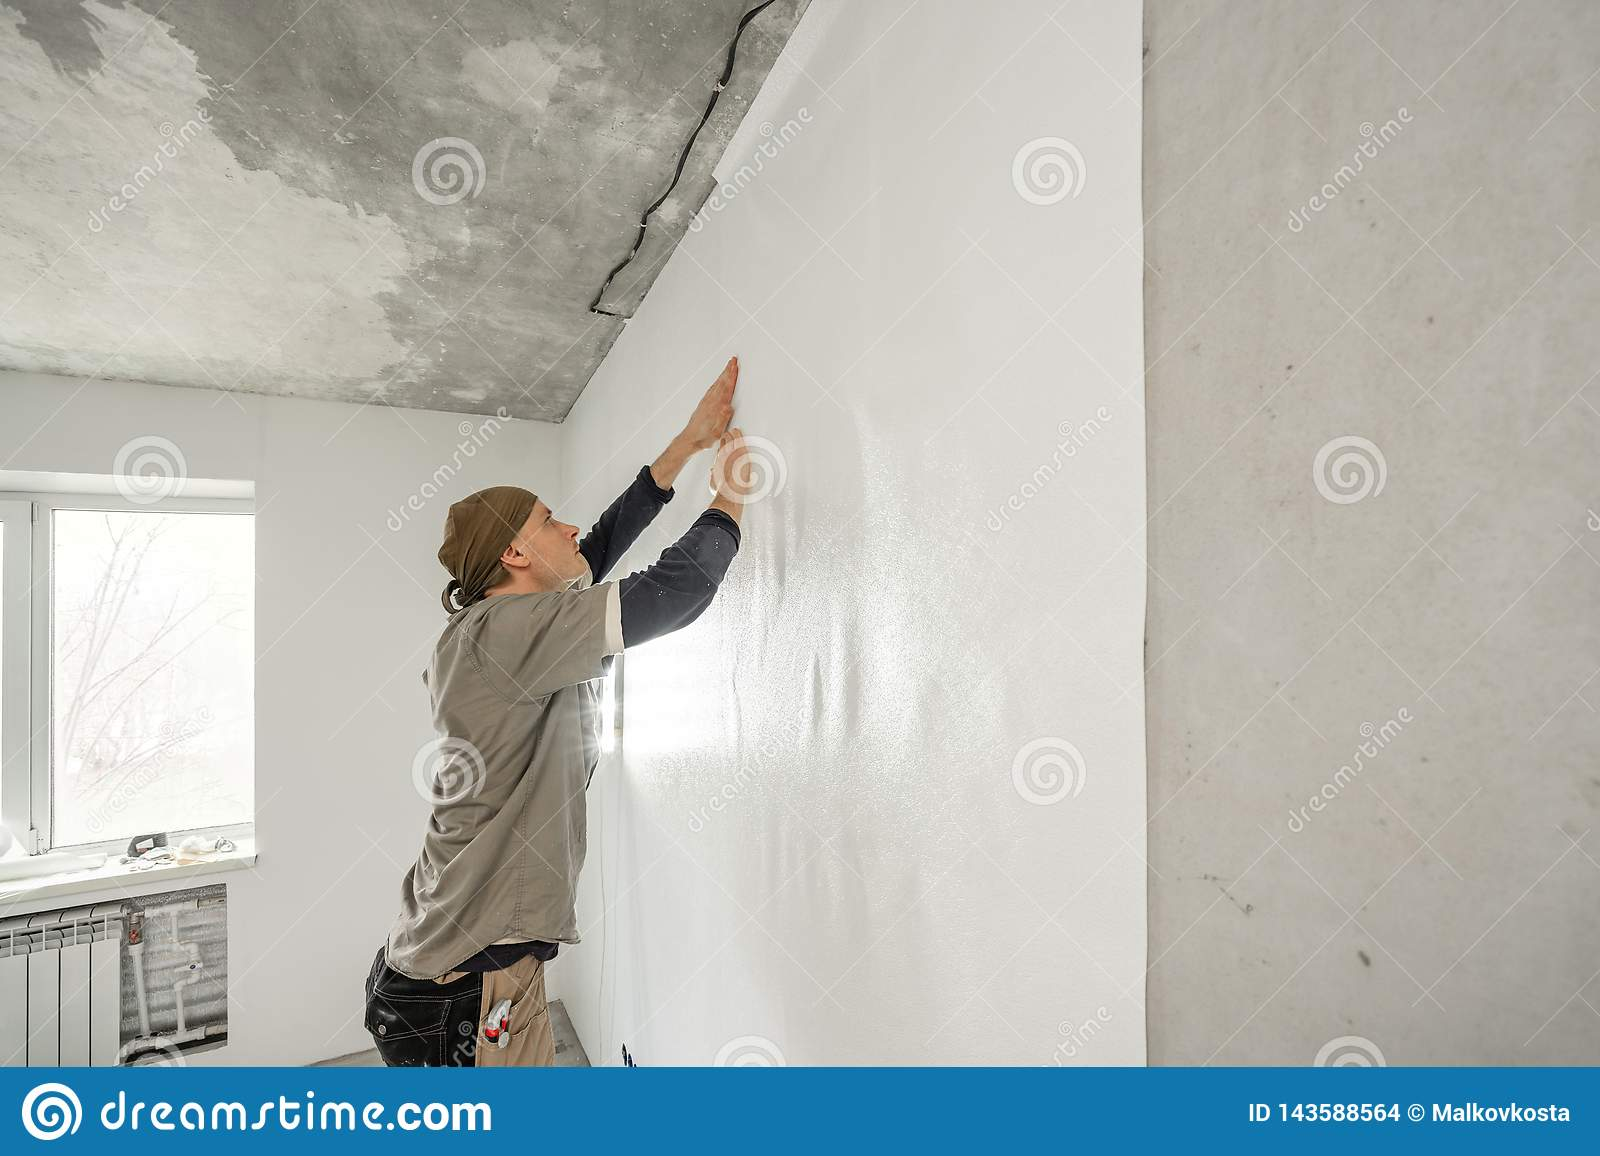 Young man, worker glueing wallpapers on concrete wall. Repair the apartment. Home renovation concept. White Wallpaper